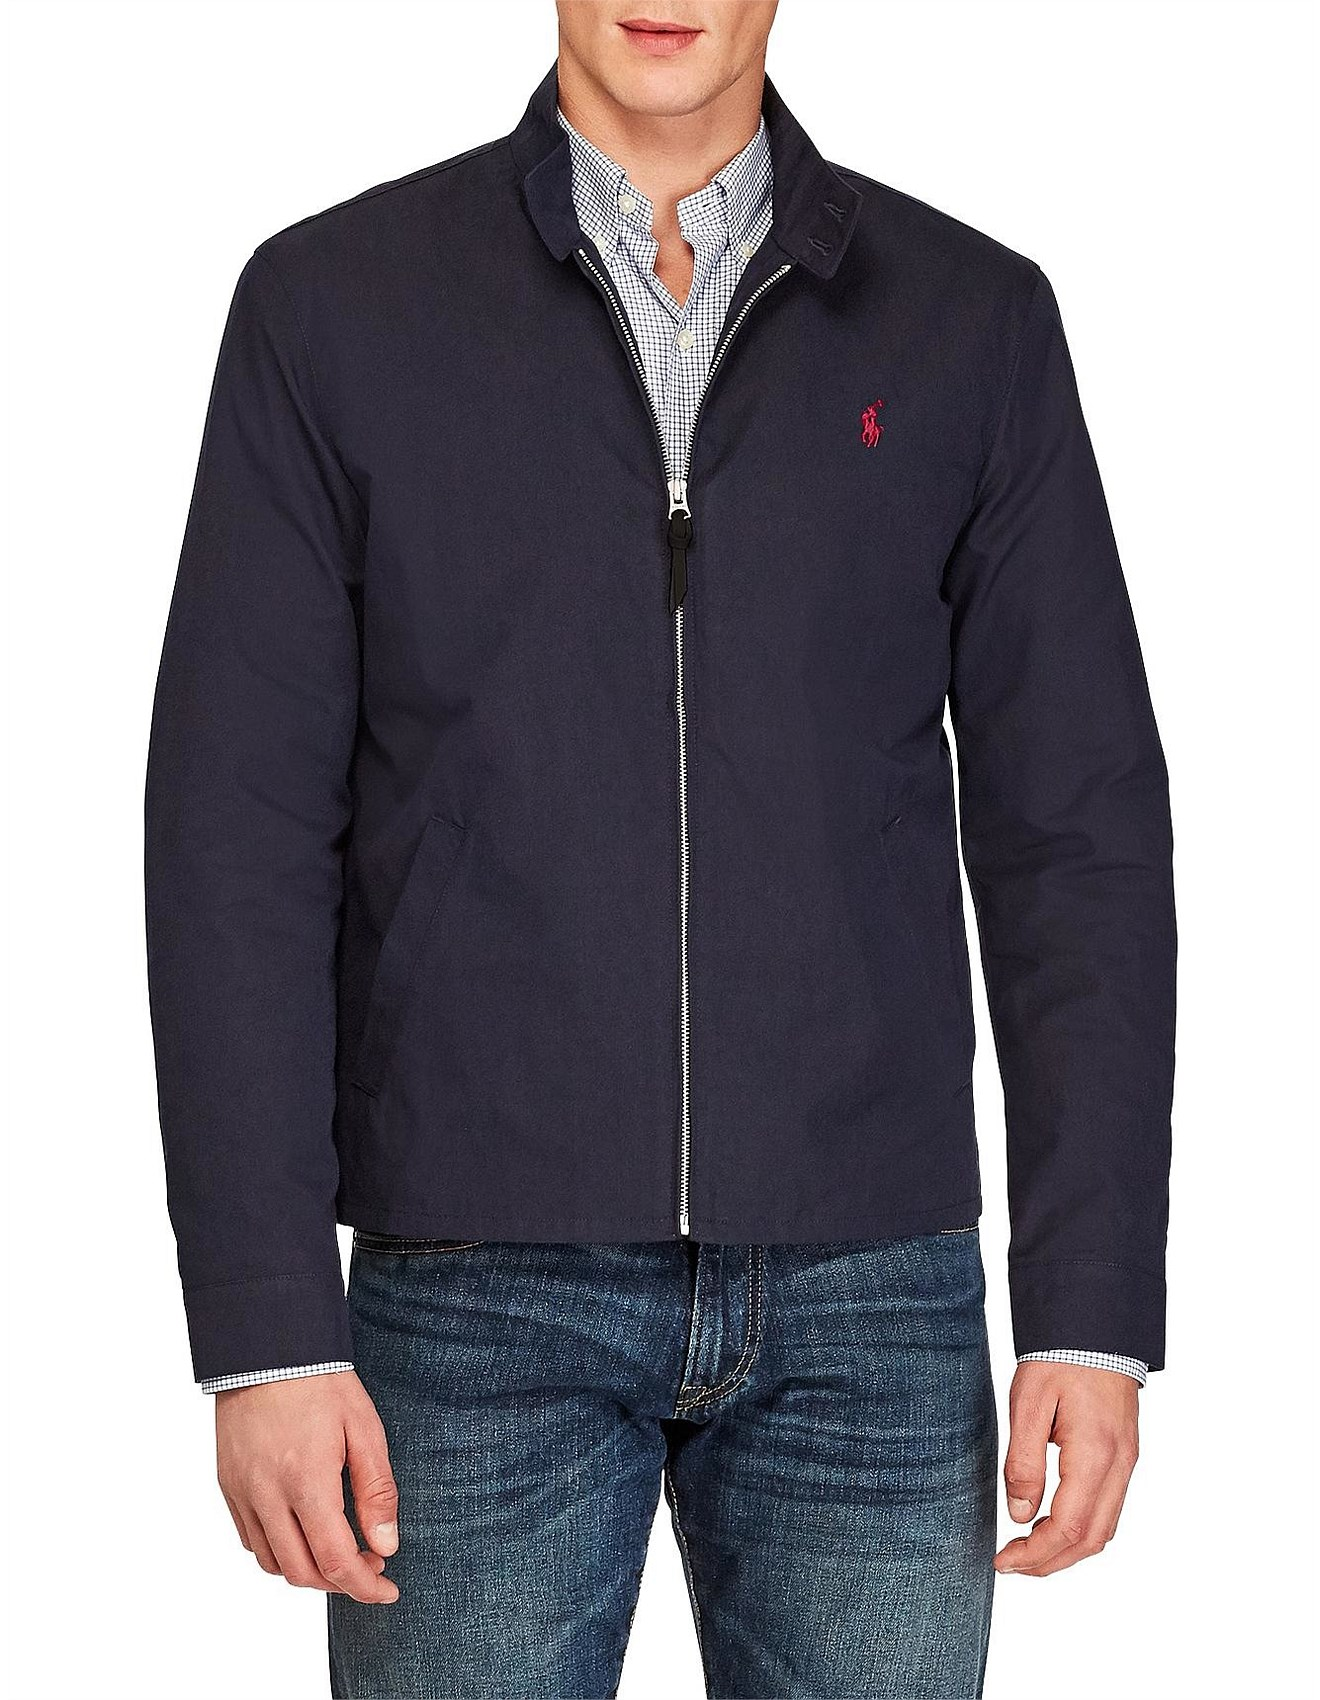 85c24d0c760c Mens Cotton Twill Jacket